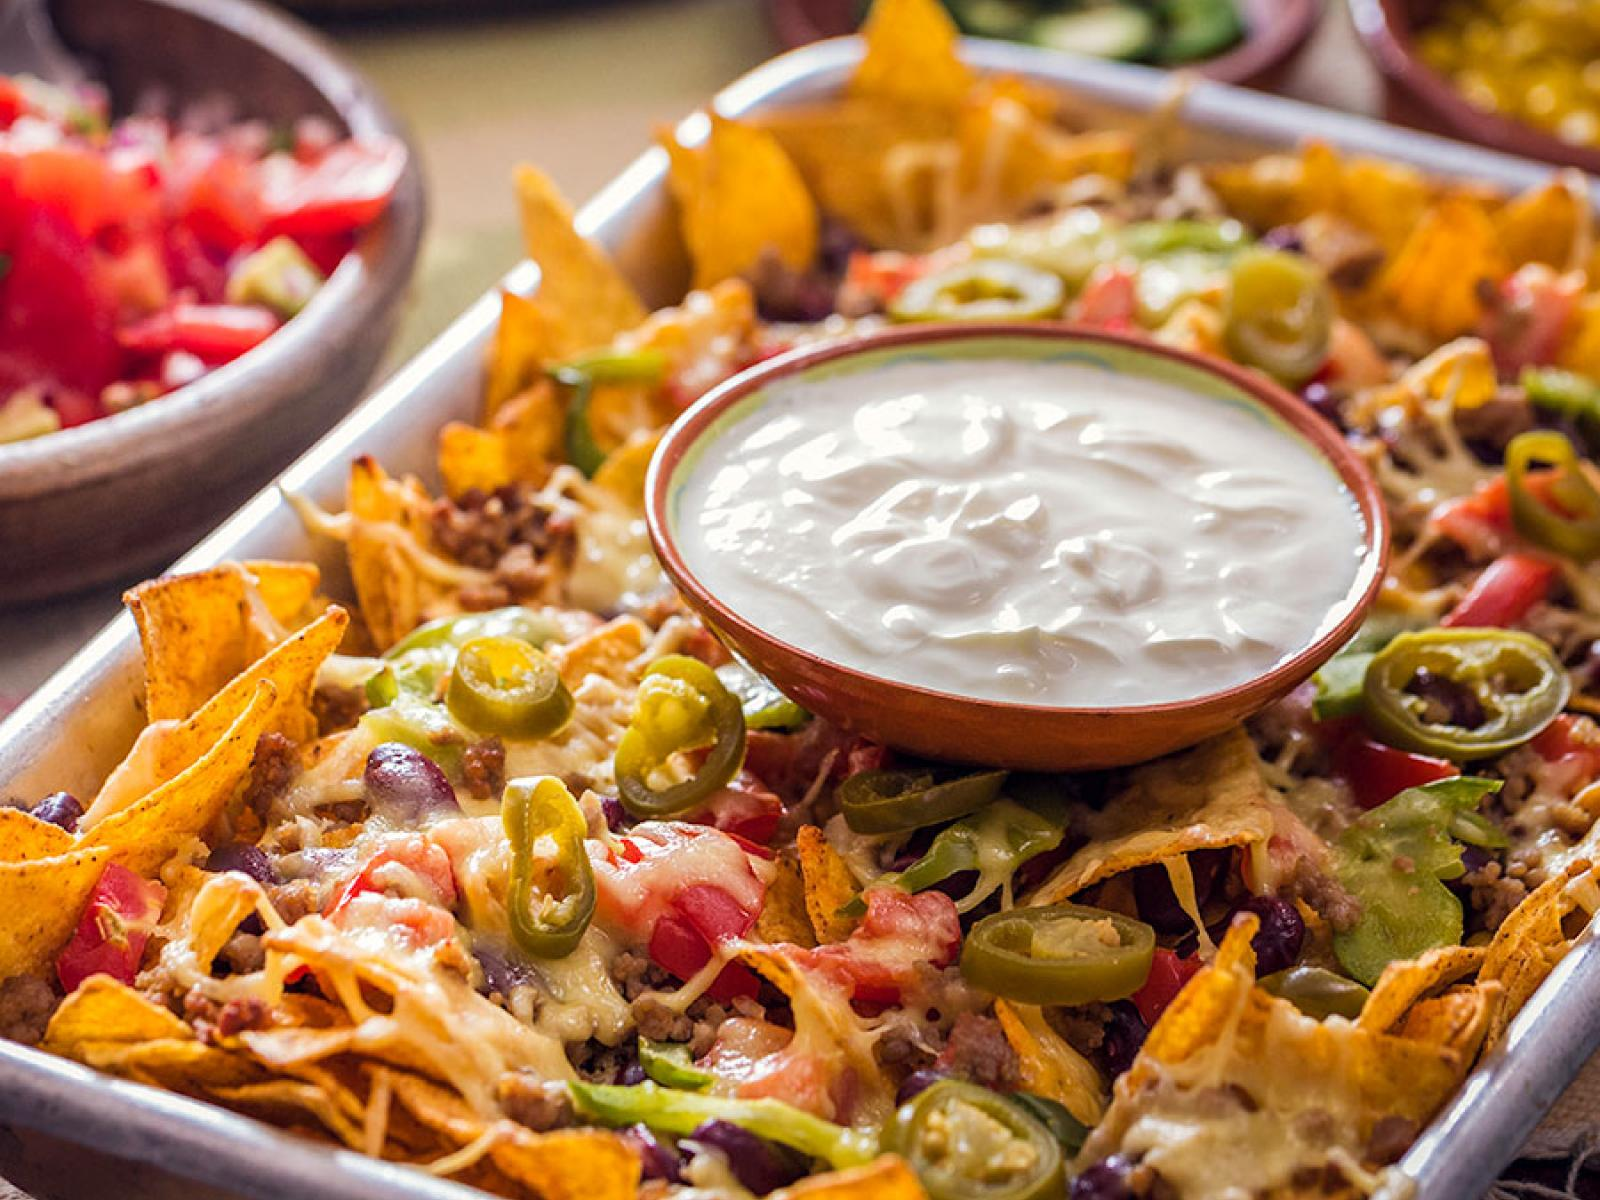 Nachos with Cheese & Tomato Salsa